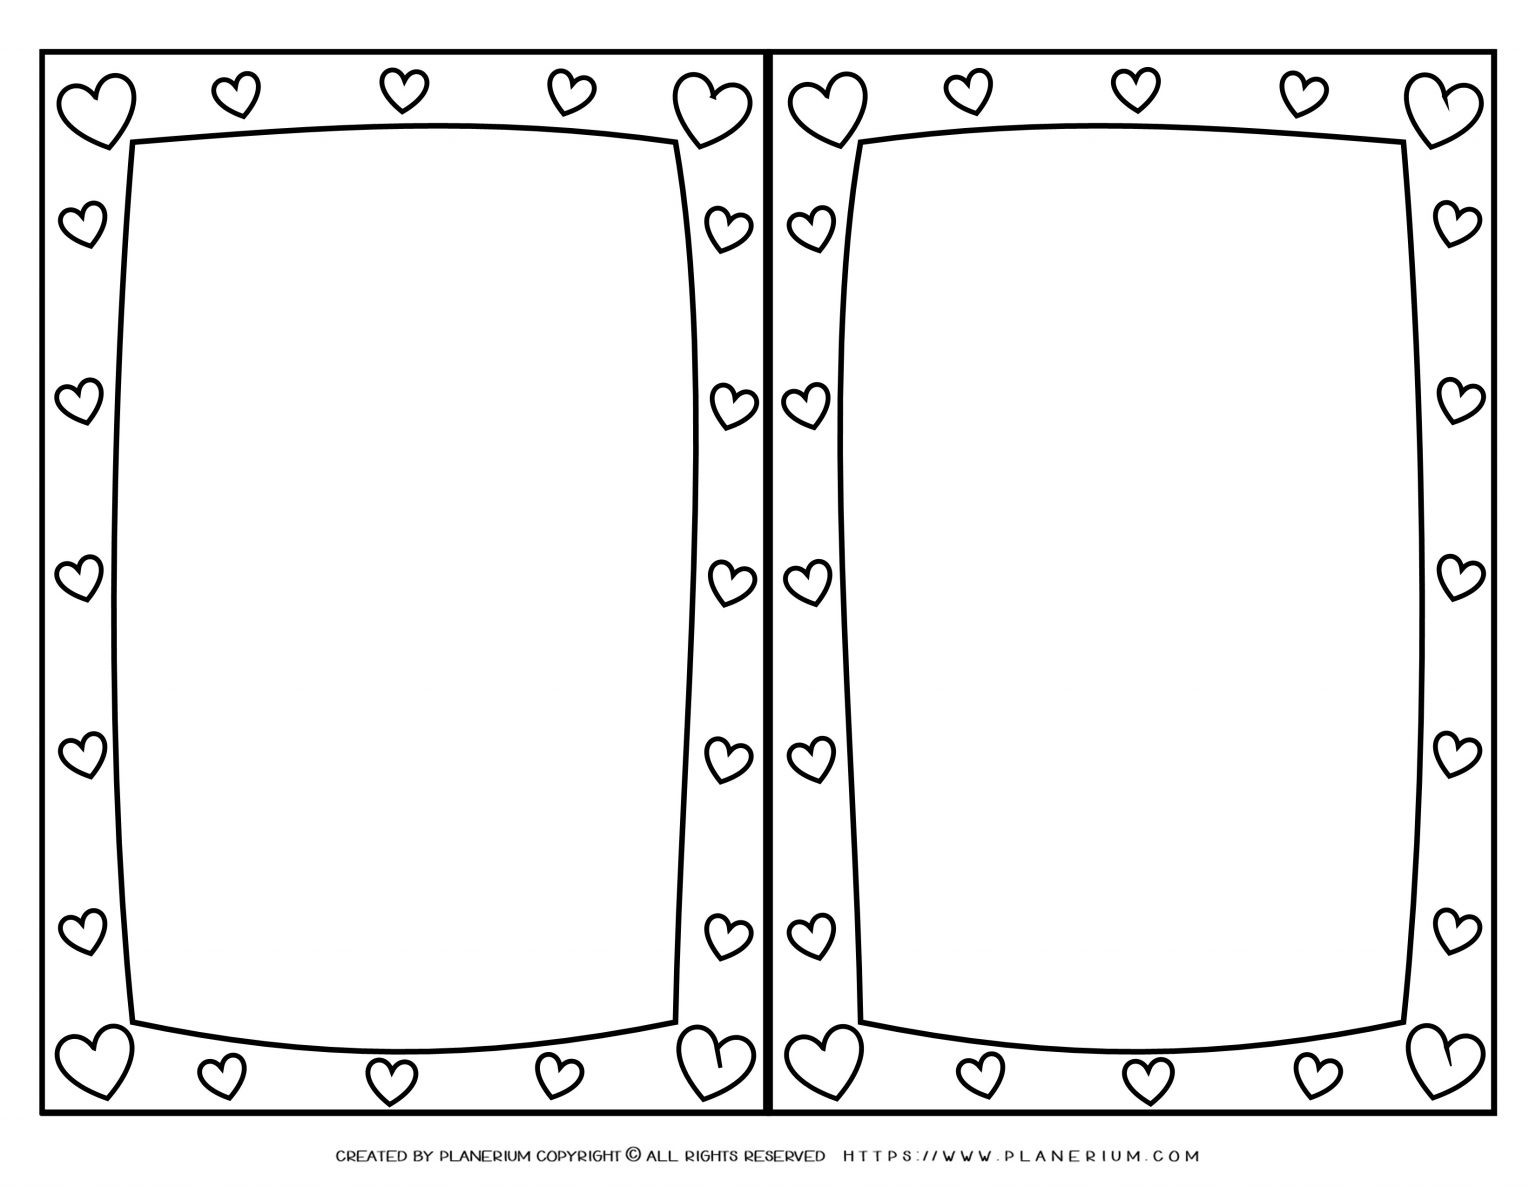 Mother's Day - Coloring Page - Greeting Hearts Frame